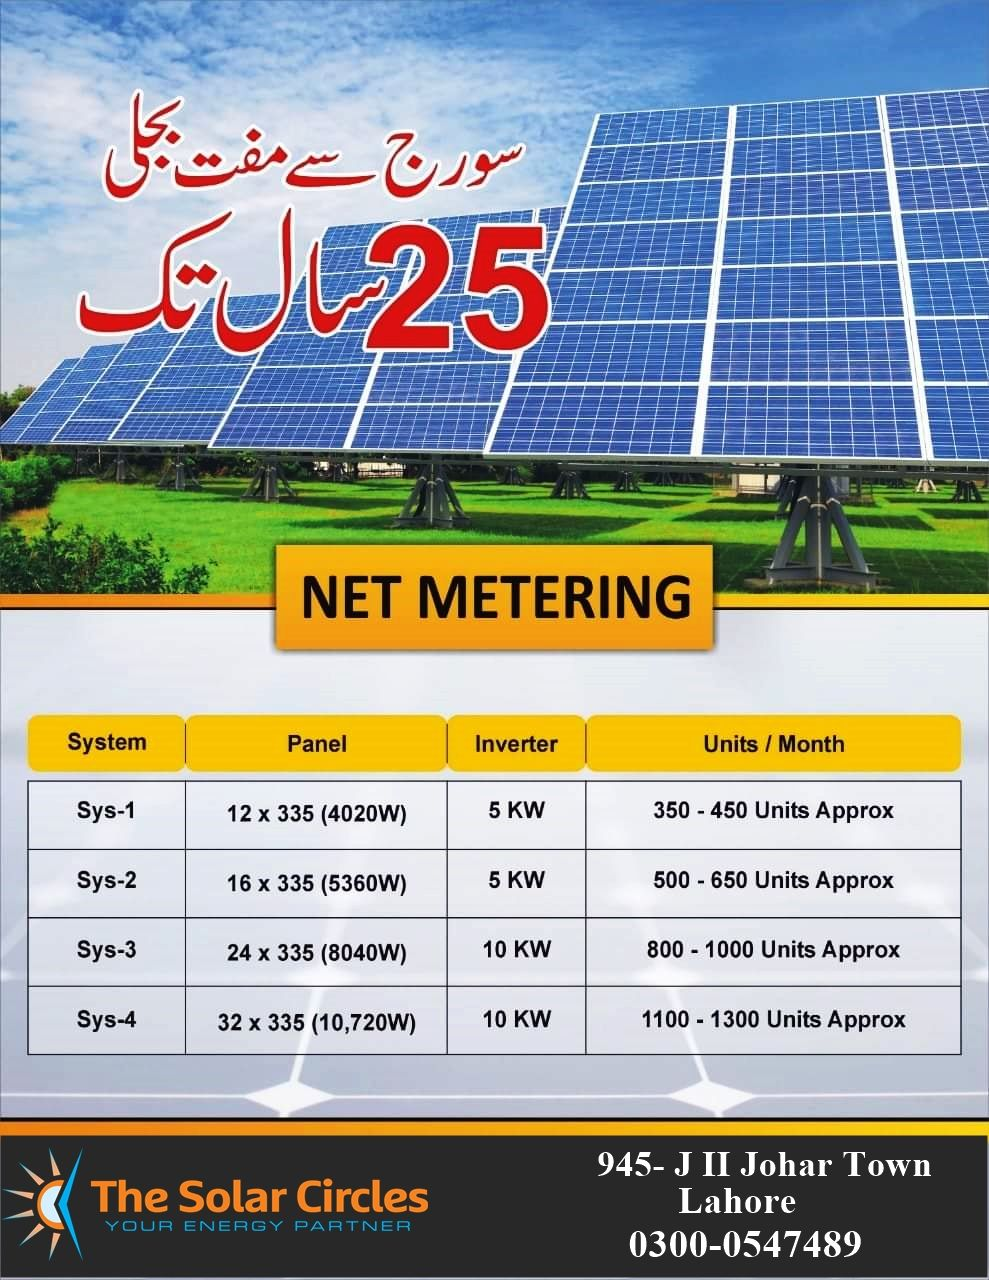 Best Solar Company In Pakistan In 2020 Solar Energy Companies Solar Solutions Photovoltaic Energy